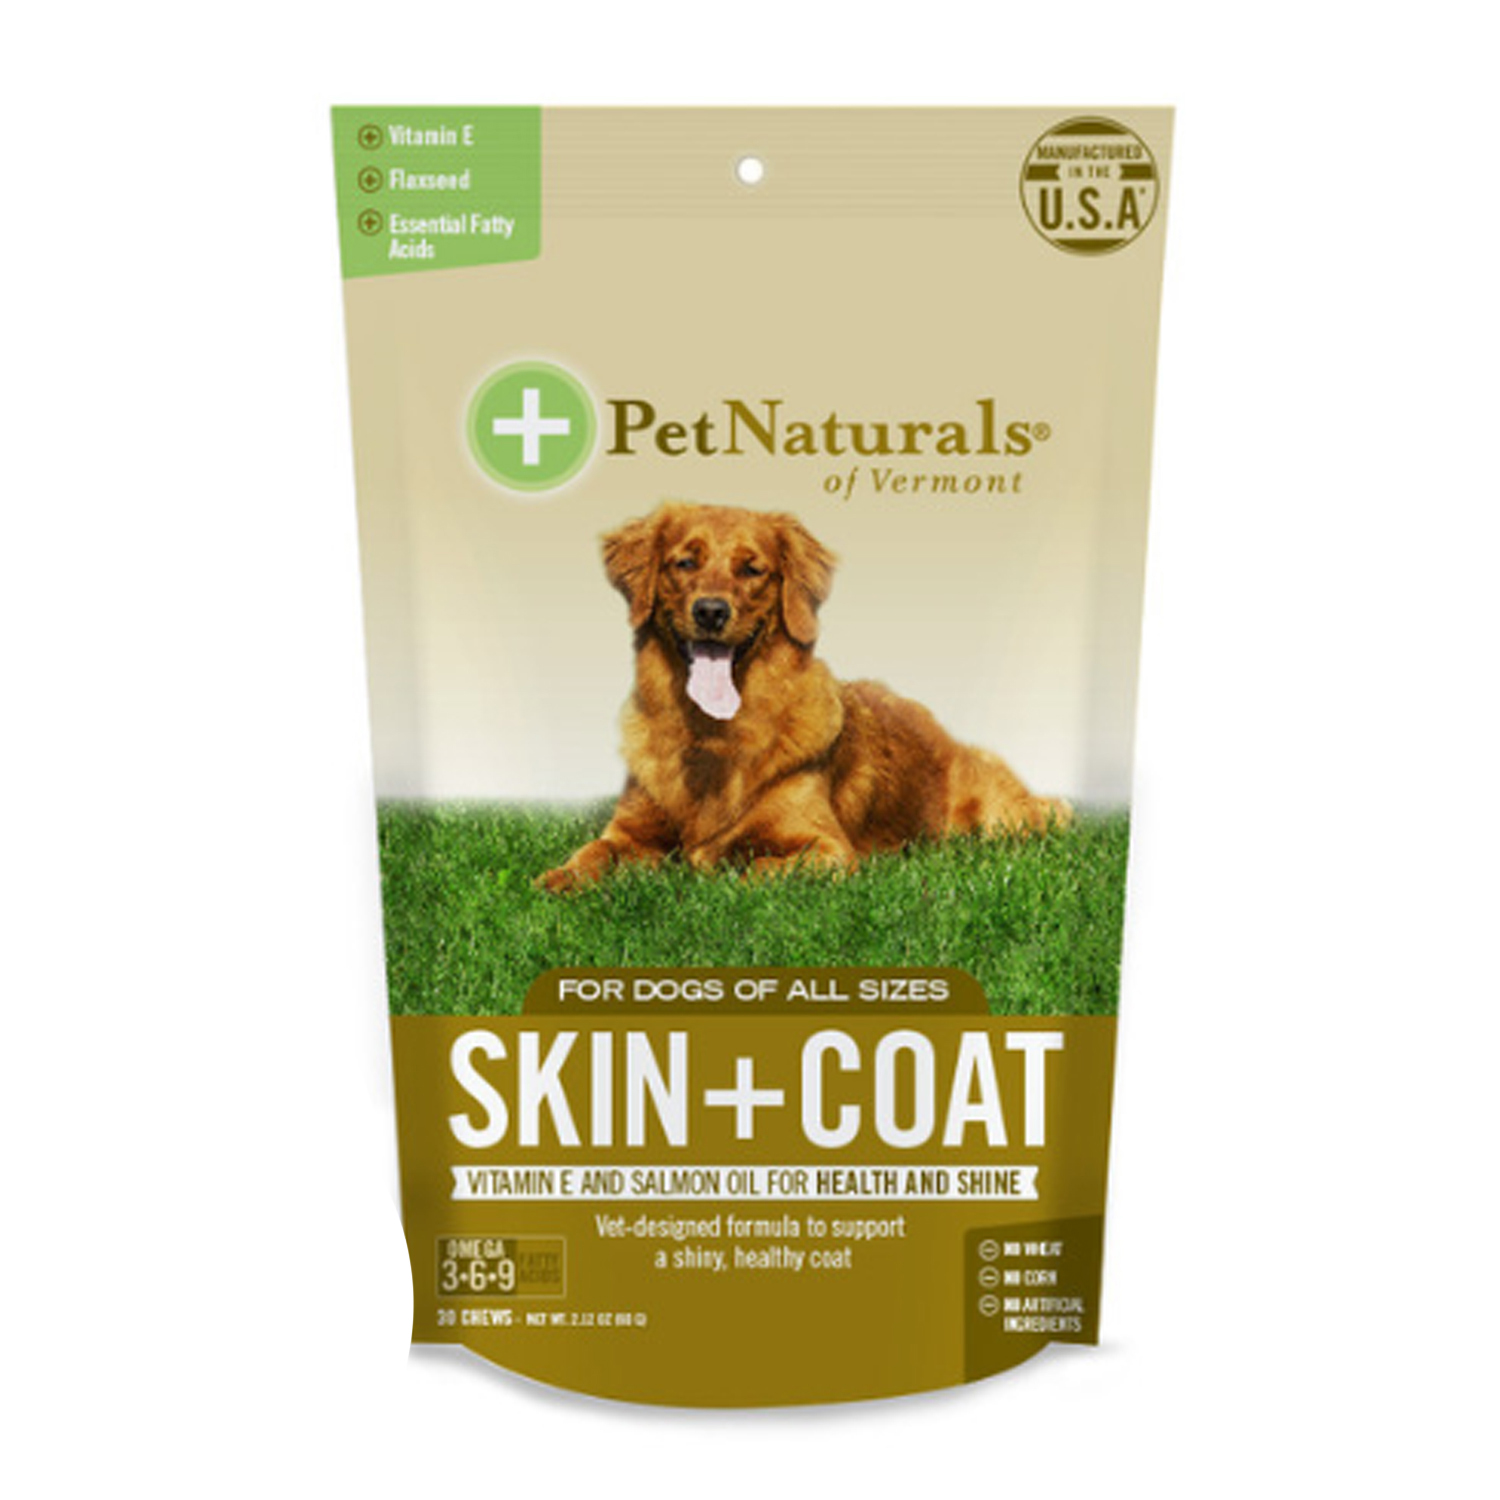 Pet Naturals Skin and Coat Dog Chews